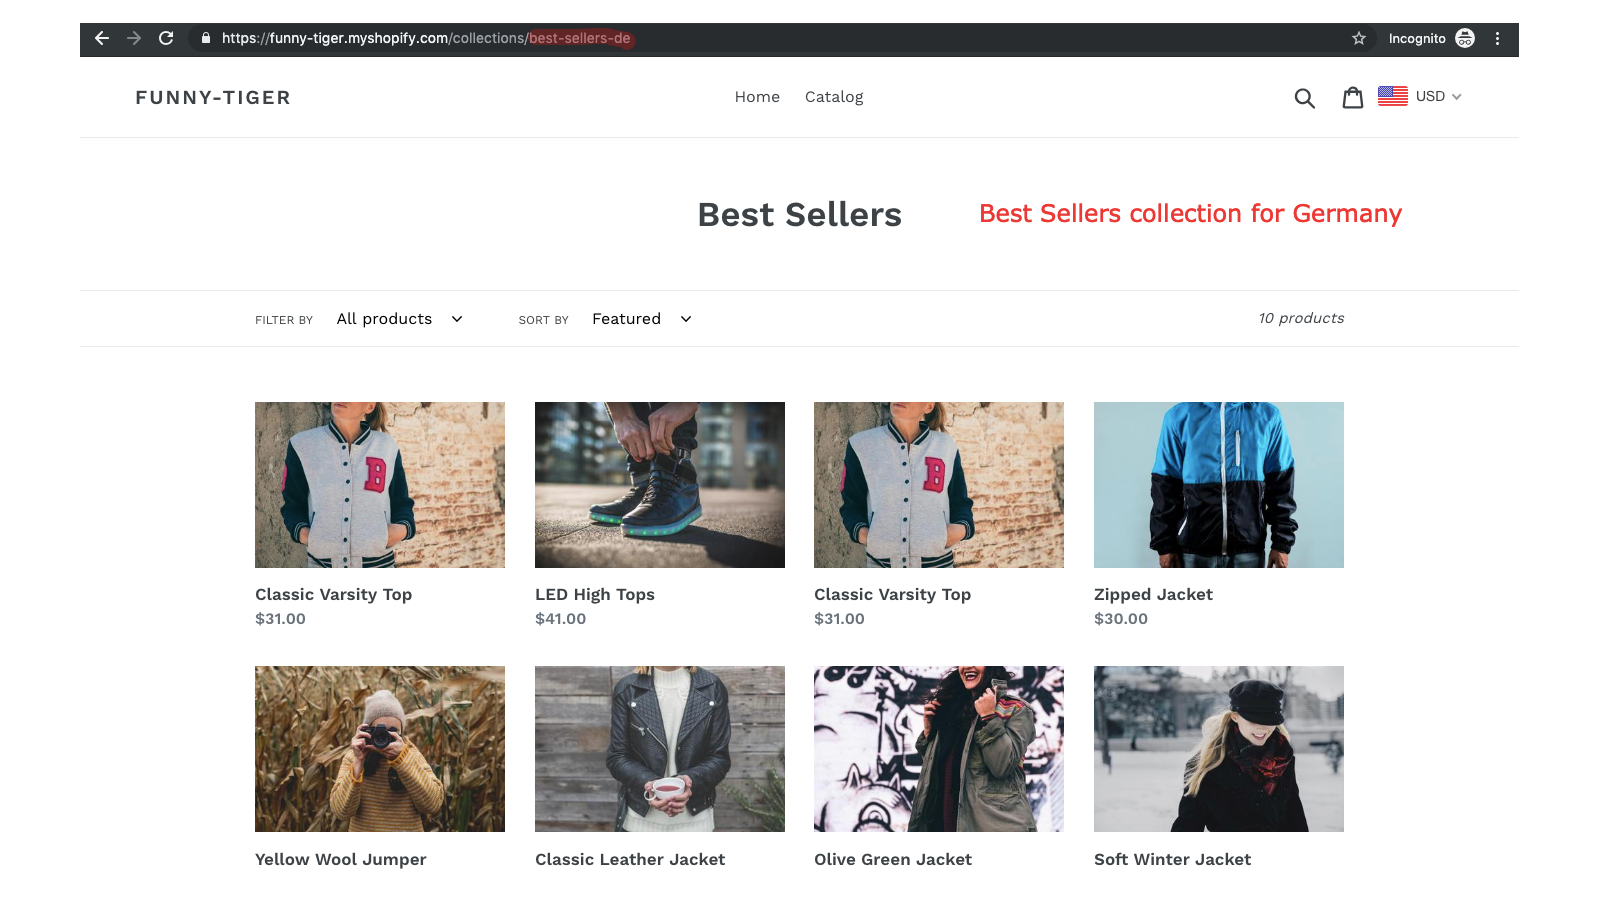 Best Sellers Collection for Germany